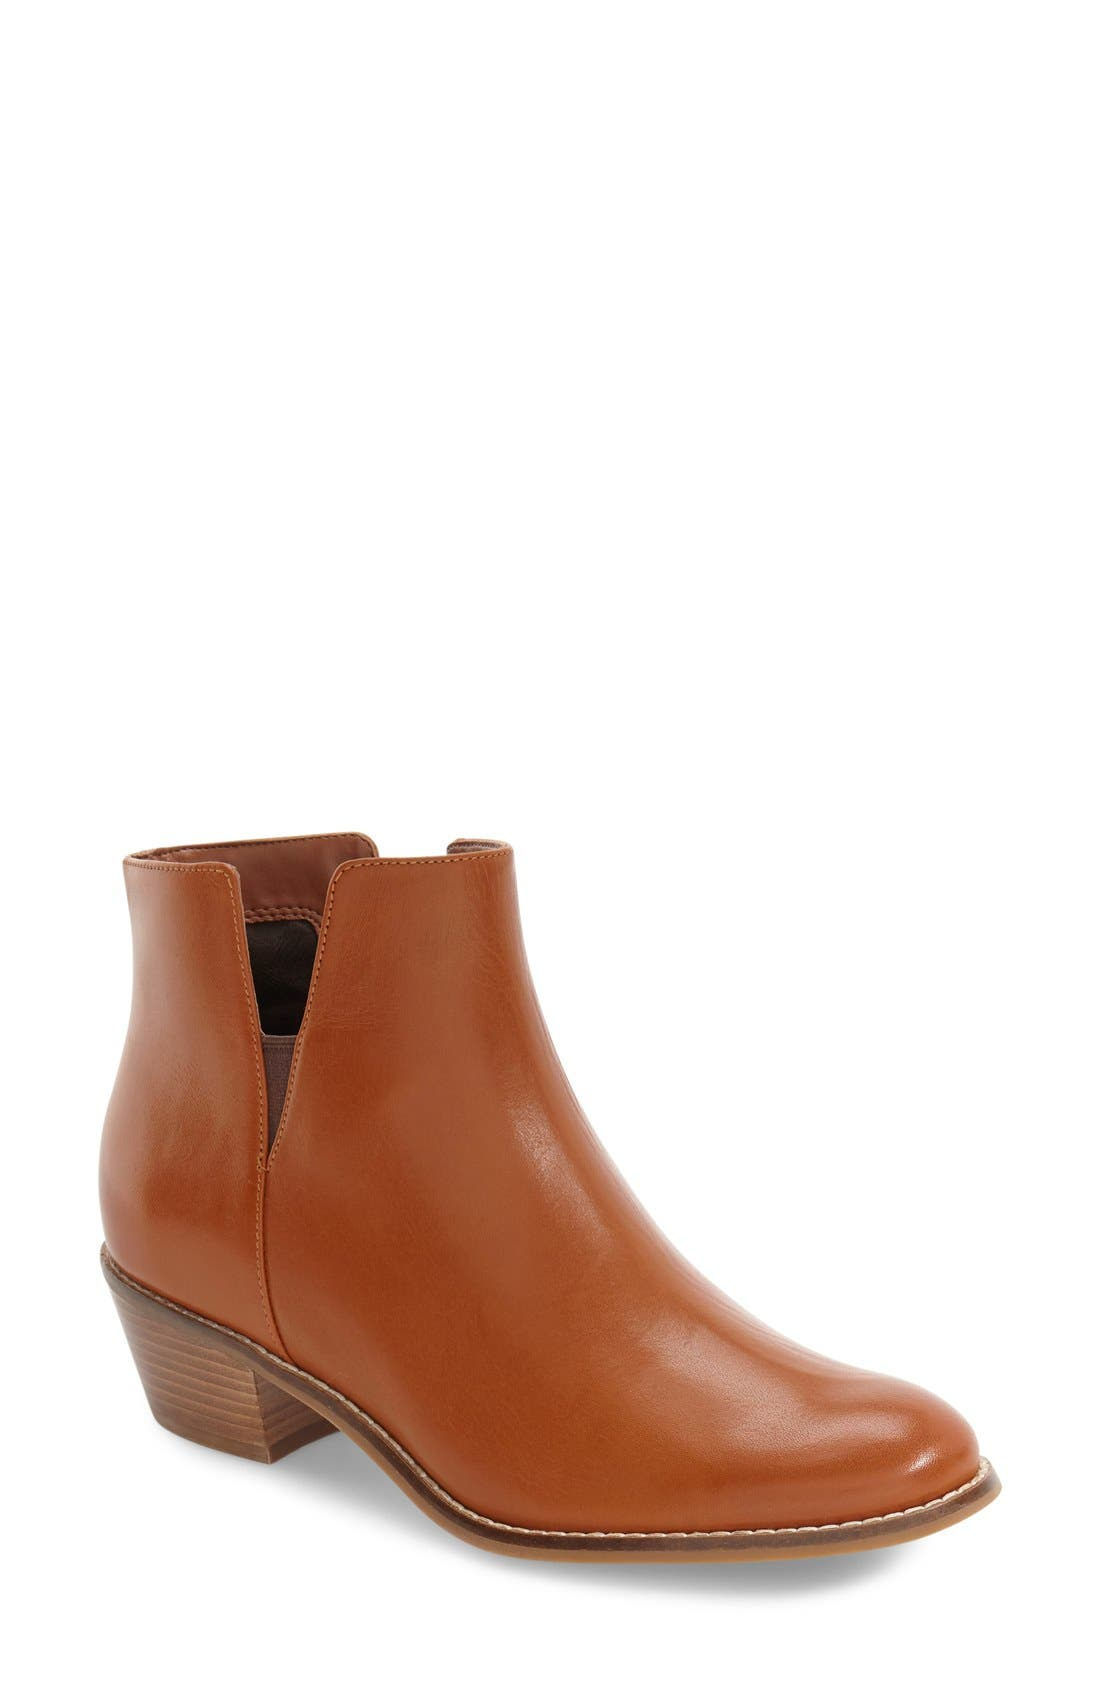 'Abbot' Chelsea Boot,                             Main thumbnail 6, color,